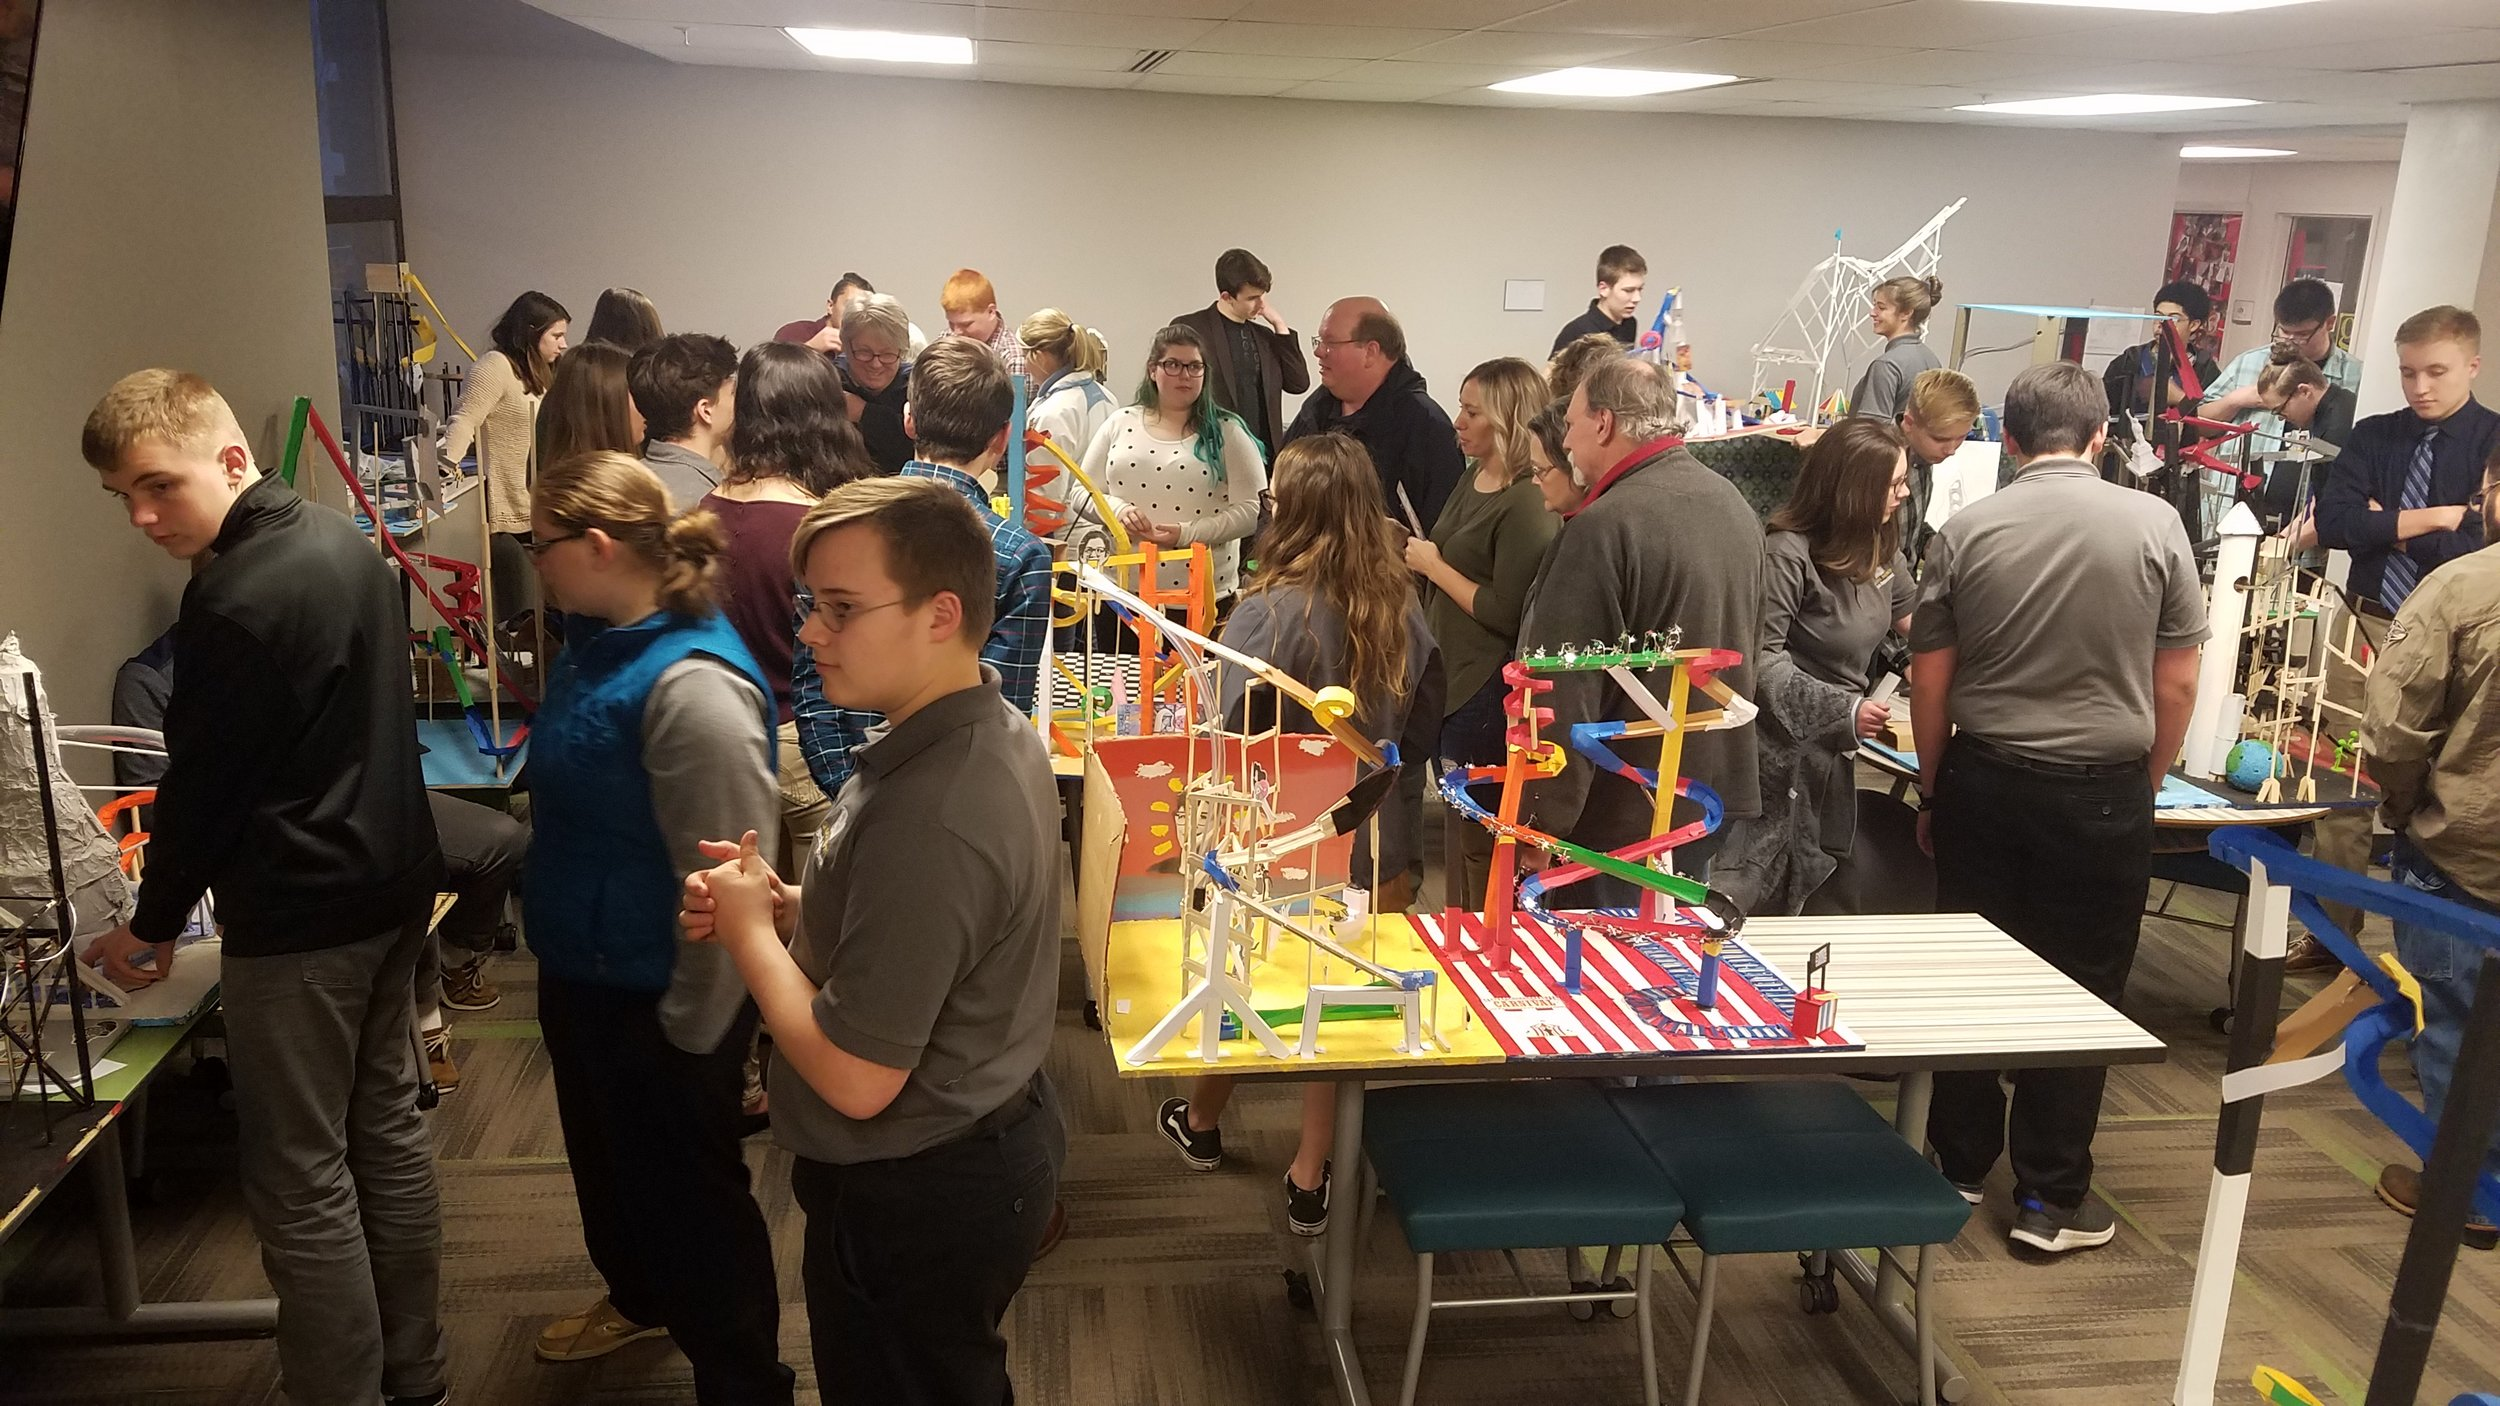 Design a model thematic rollercoaster based on a time period or idea.